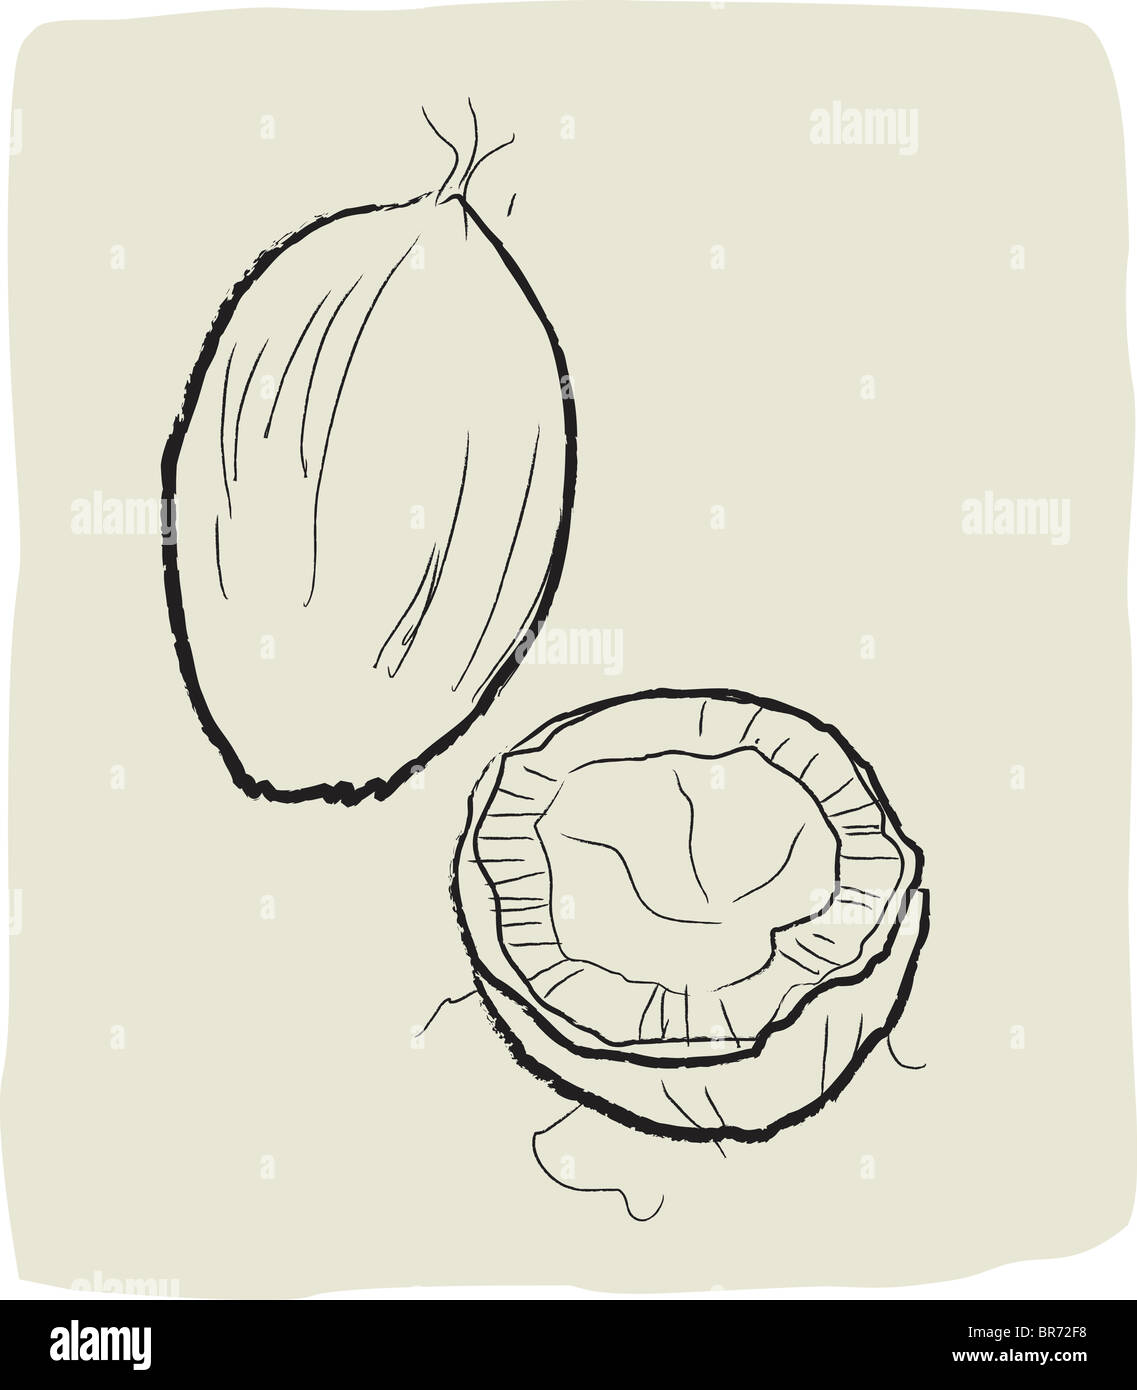 A textured line drawing of coconut - Stock Image